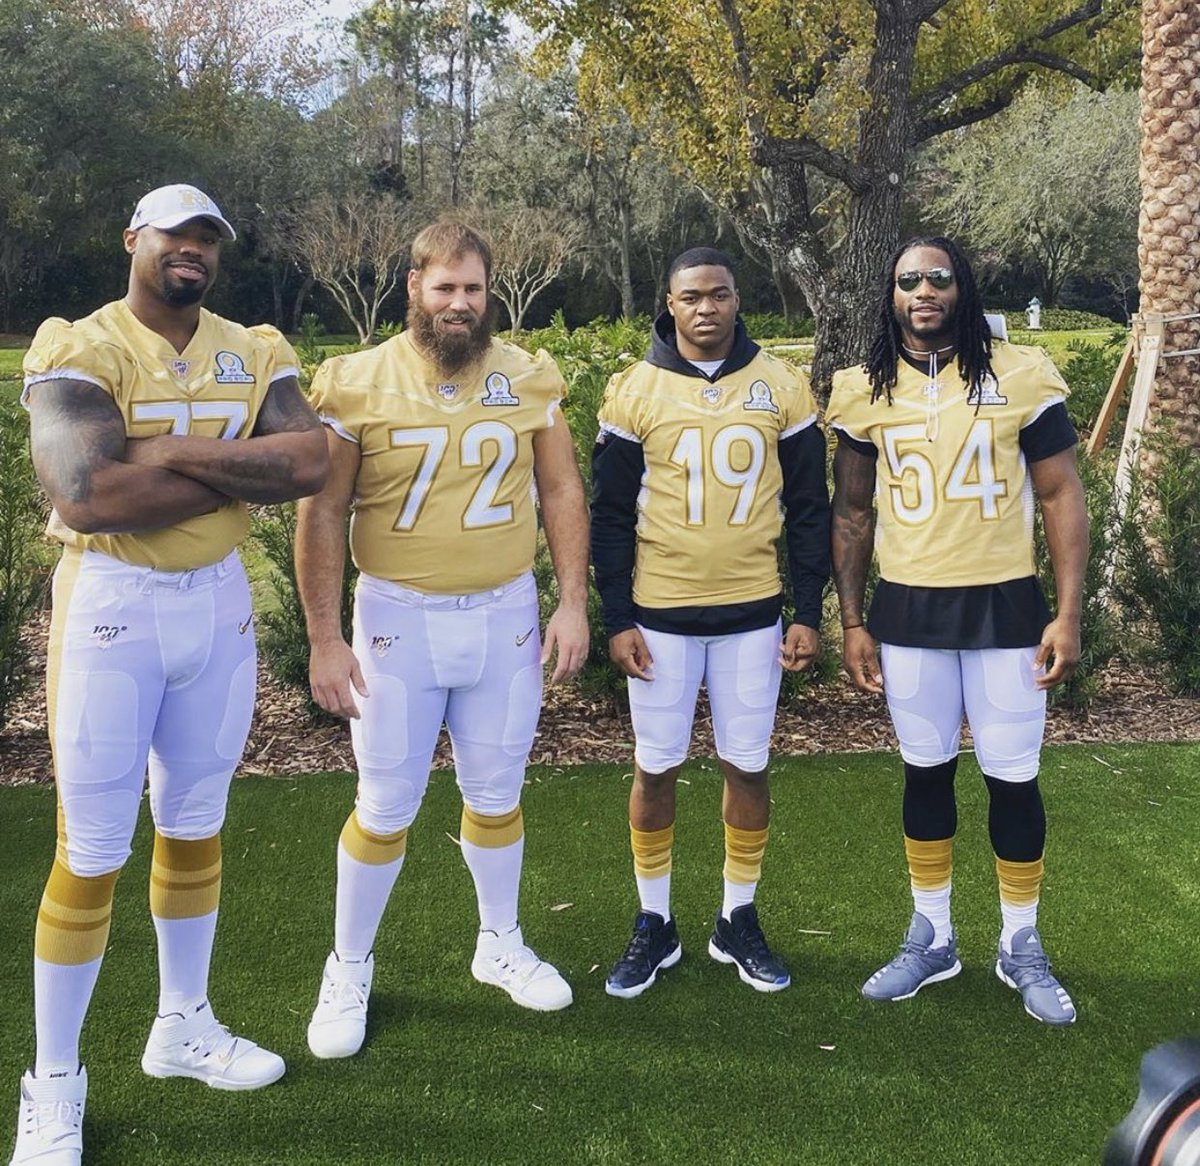 Dallas Cowboys Pro Bowl Teammates Photo Going Viral